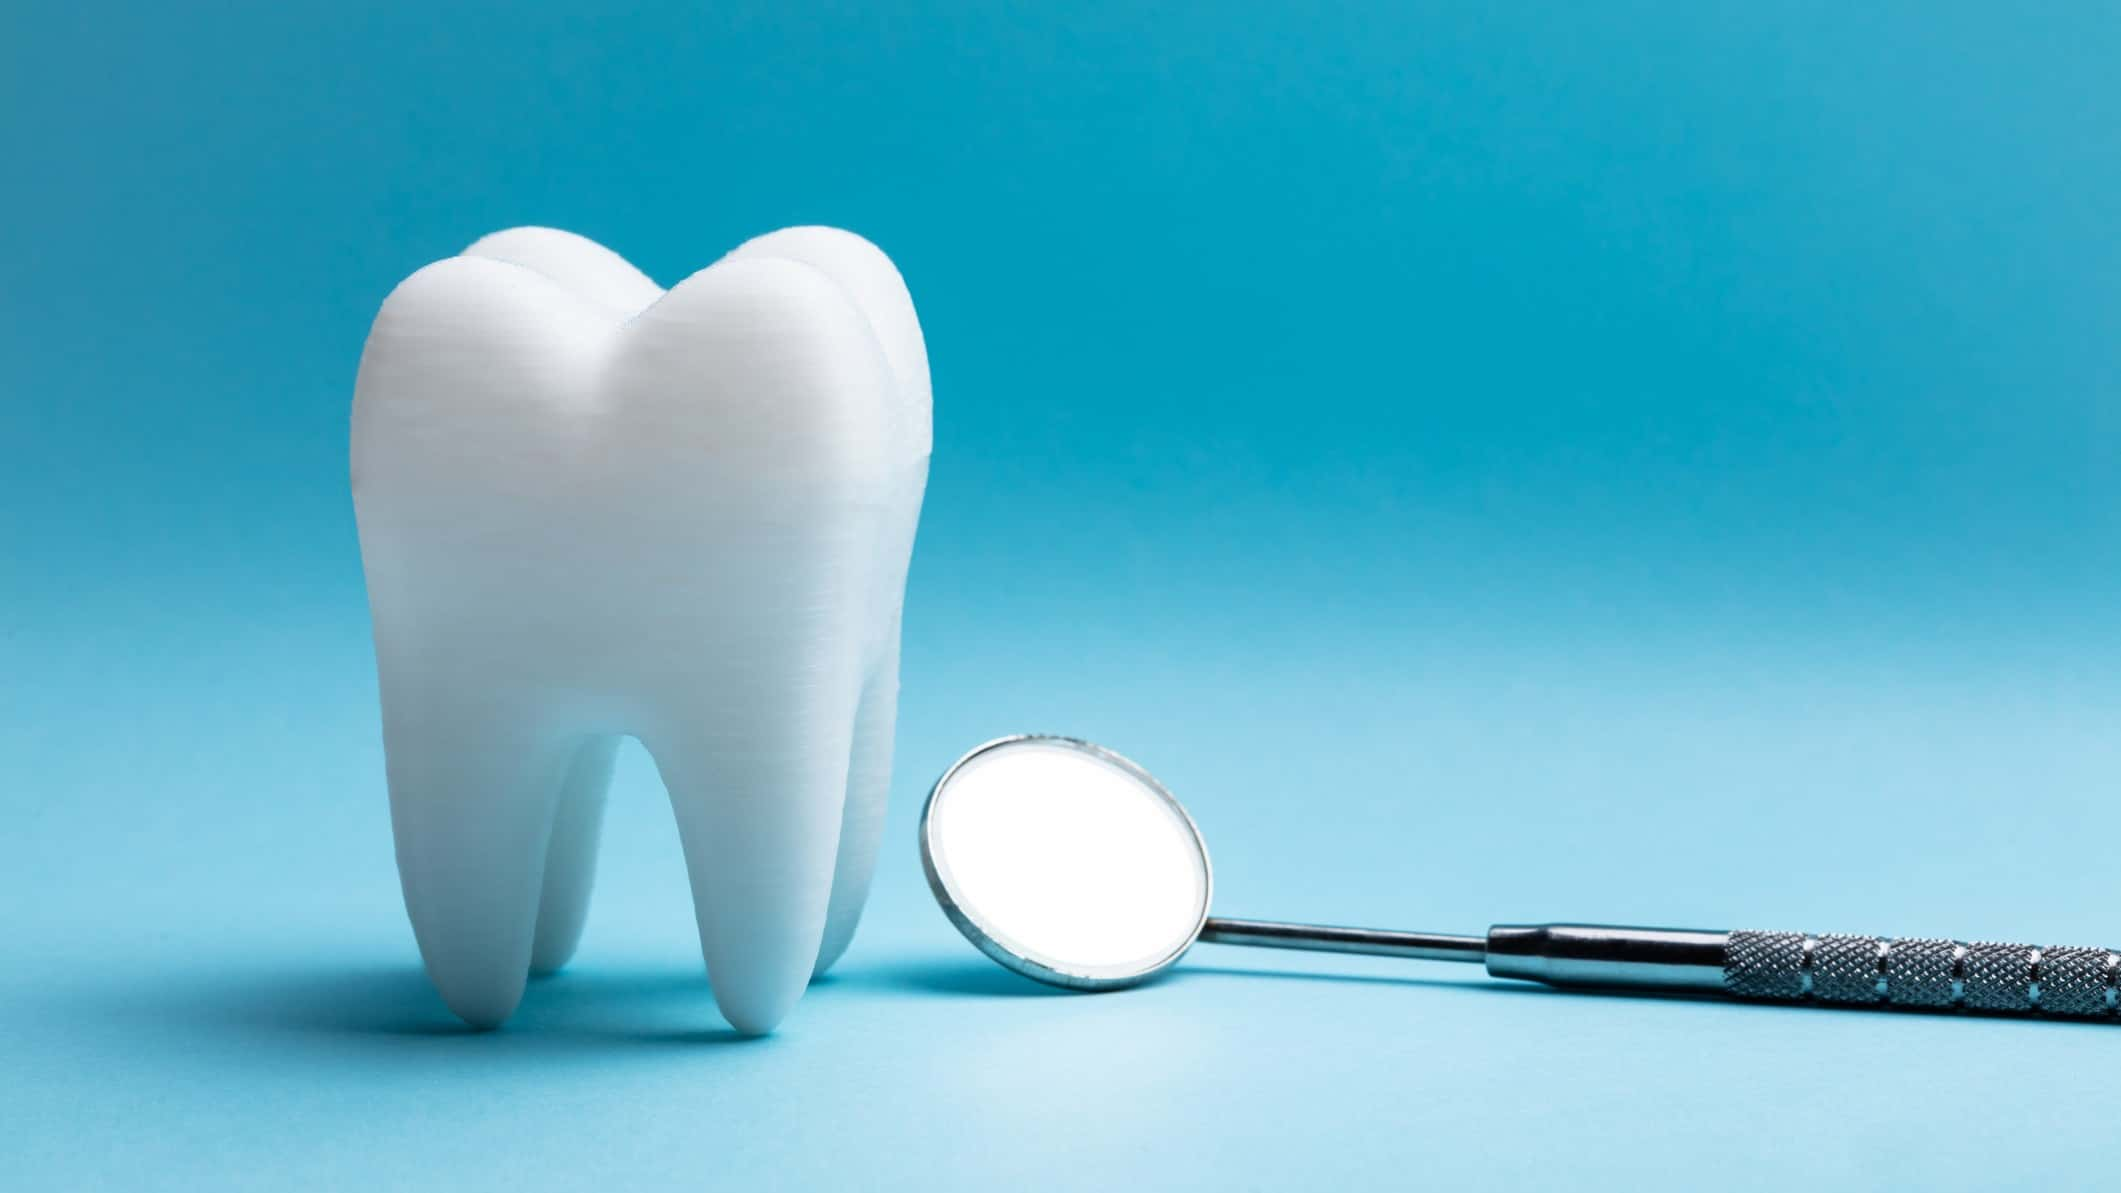 Tooth and dentist tool on blue background